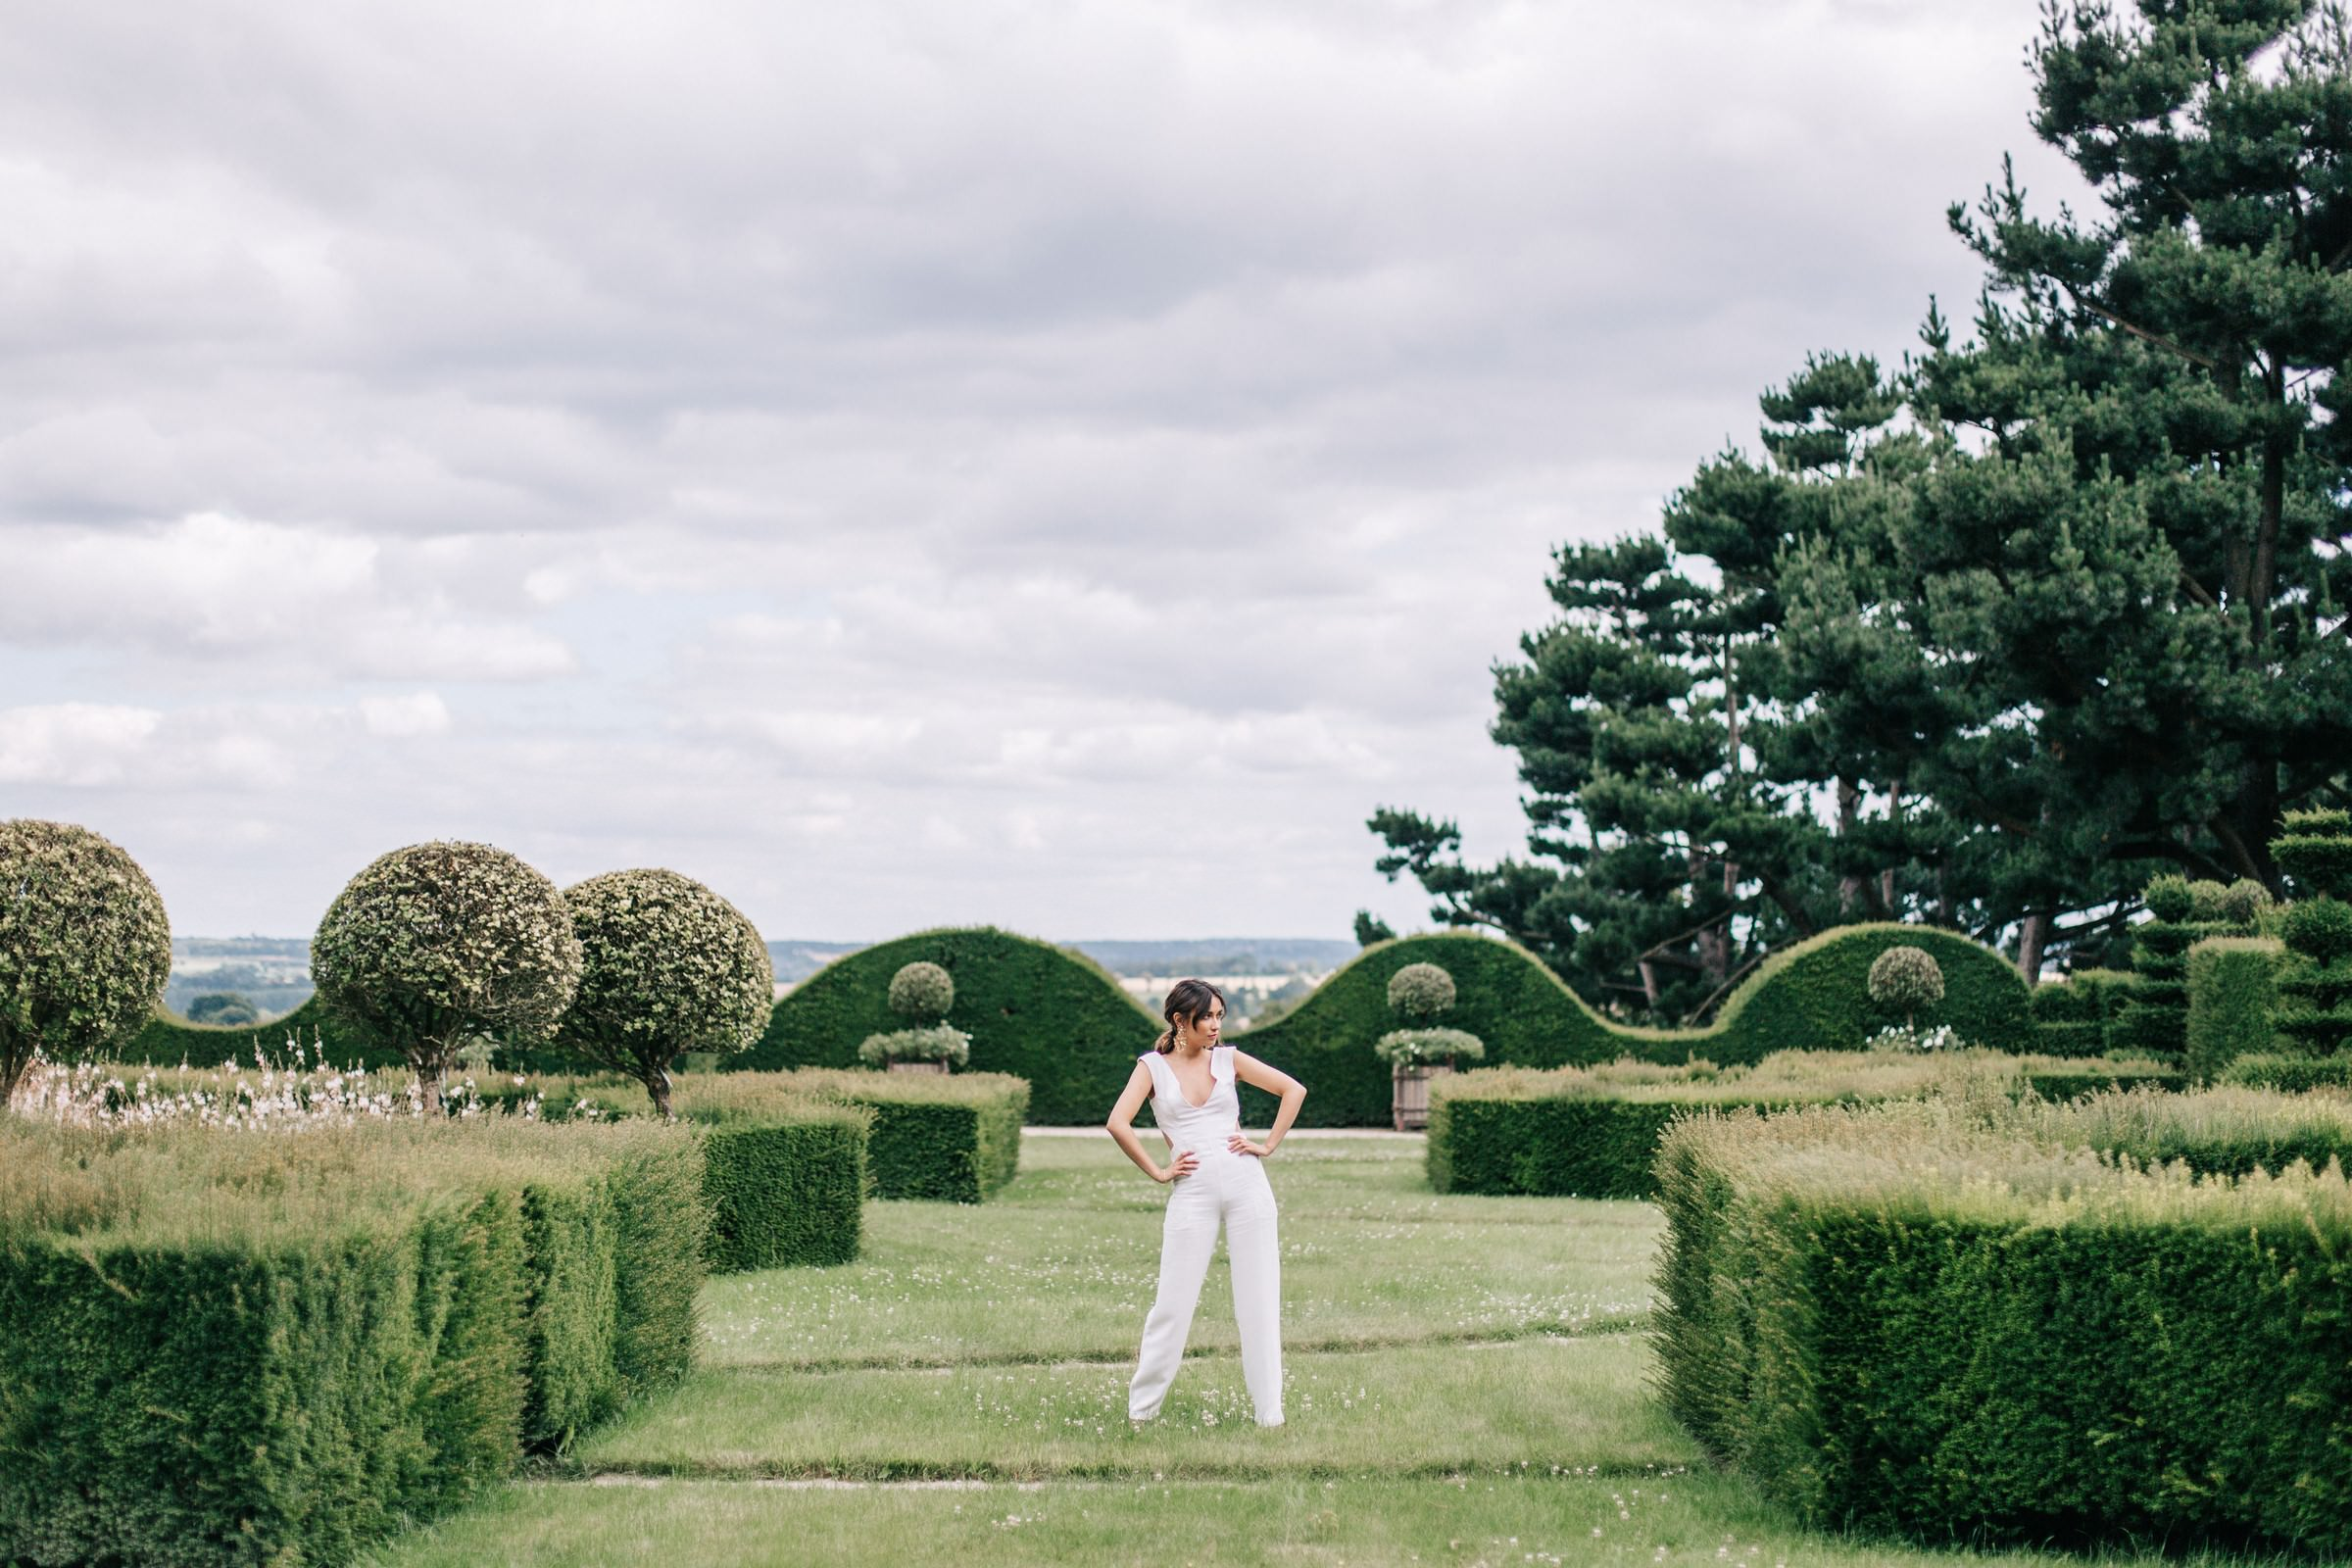 bride in white pantsuit portrait- photo by Amandine Ropars, france